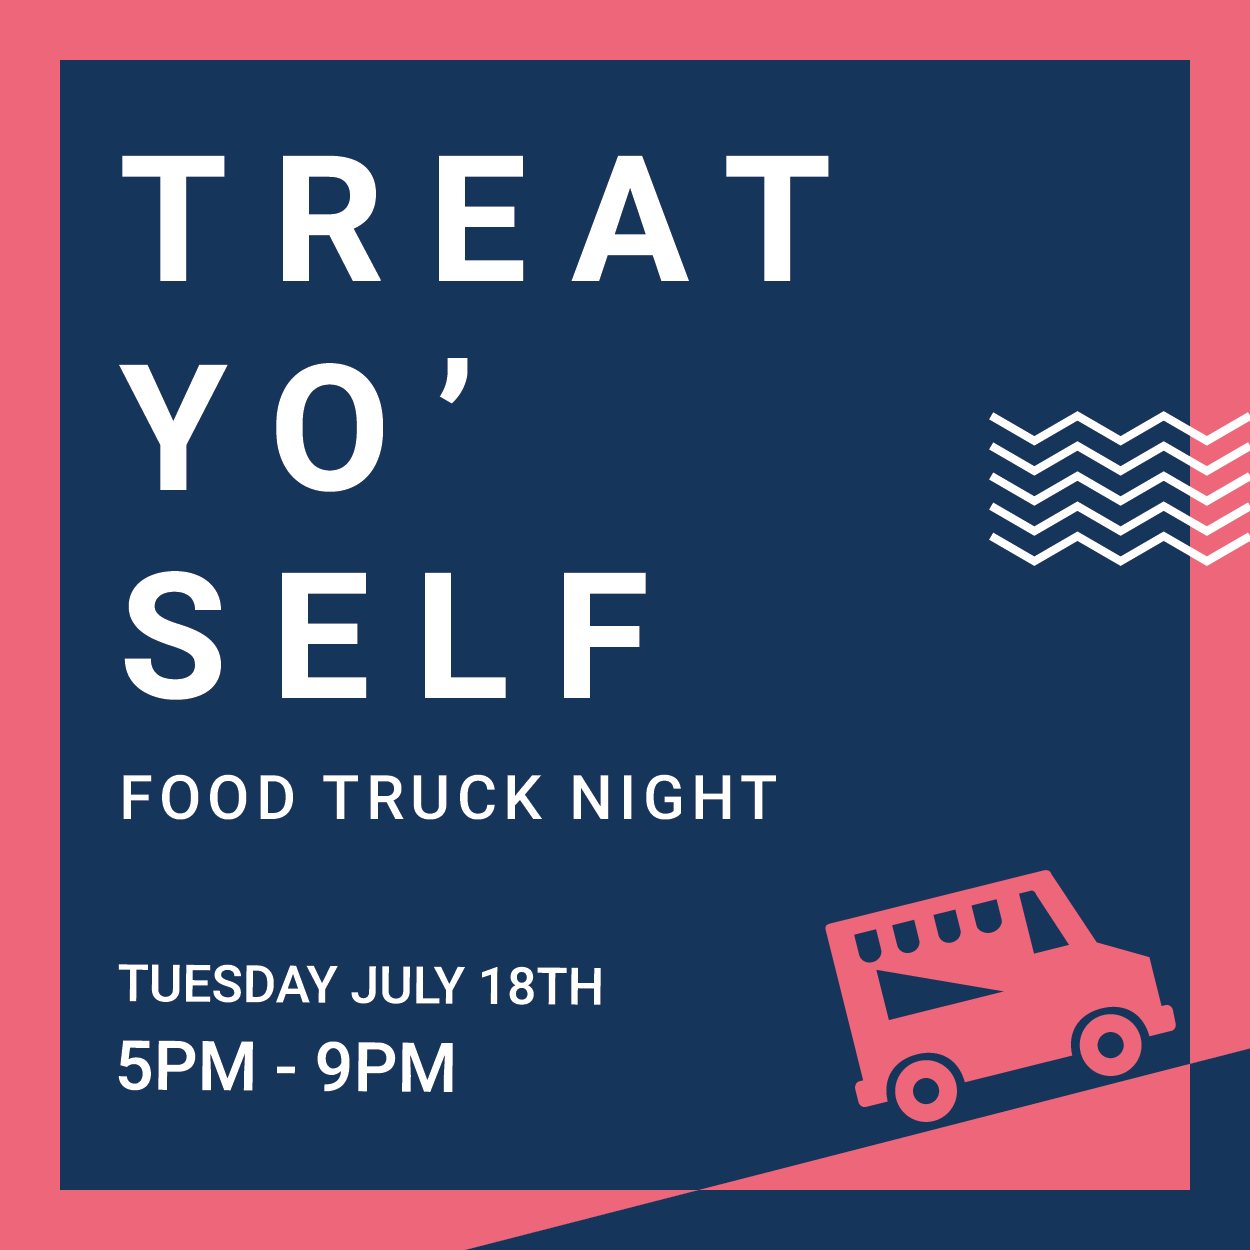 Treat Yo Self Food Truck Night